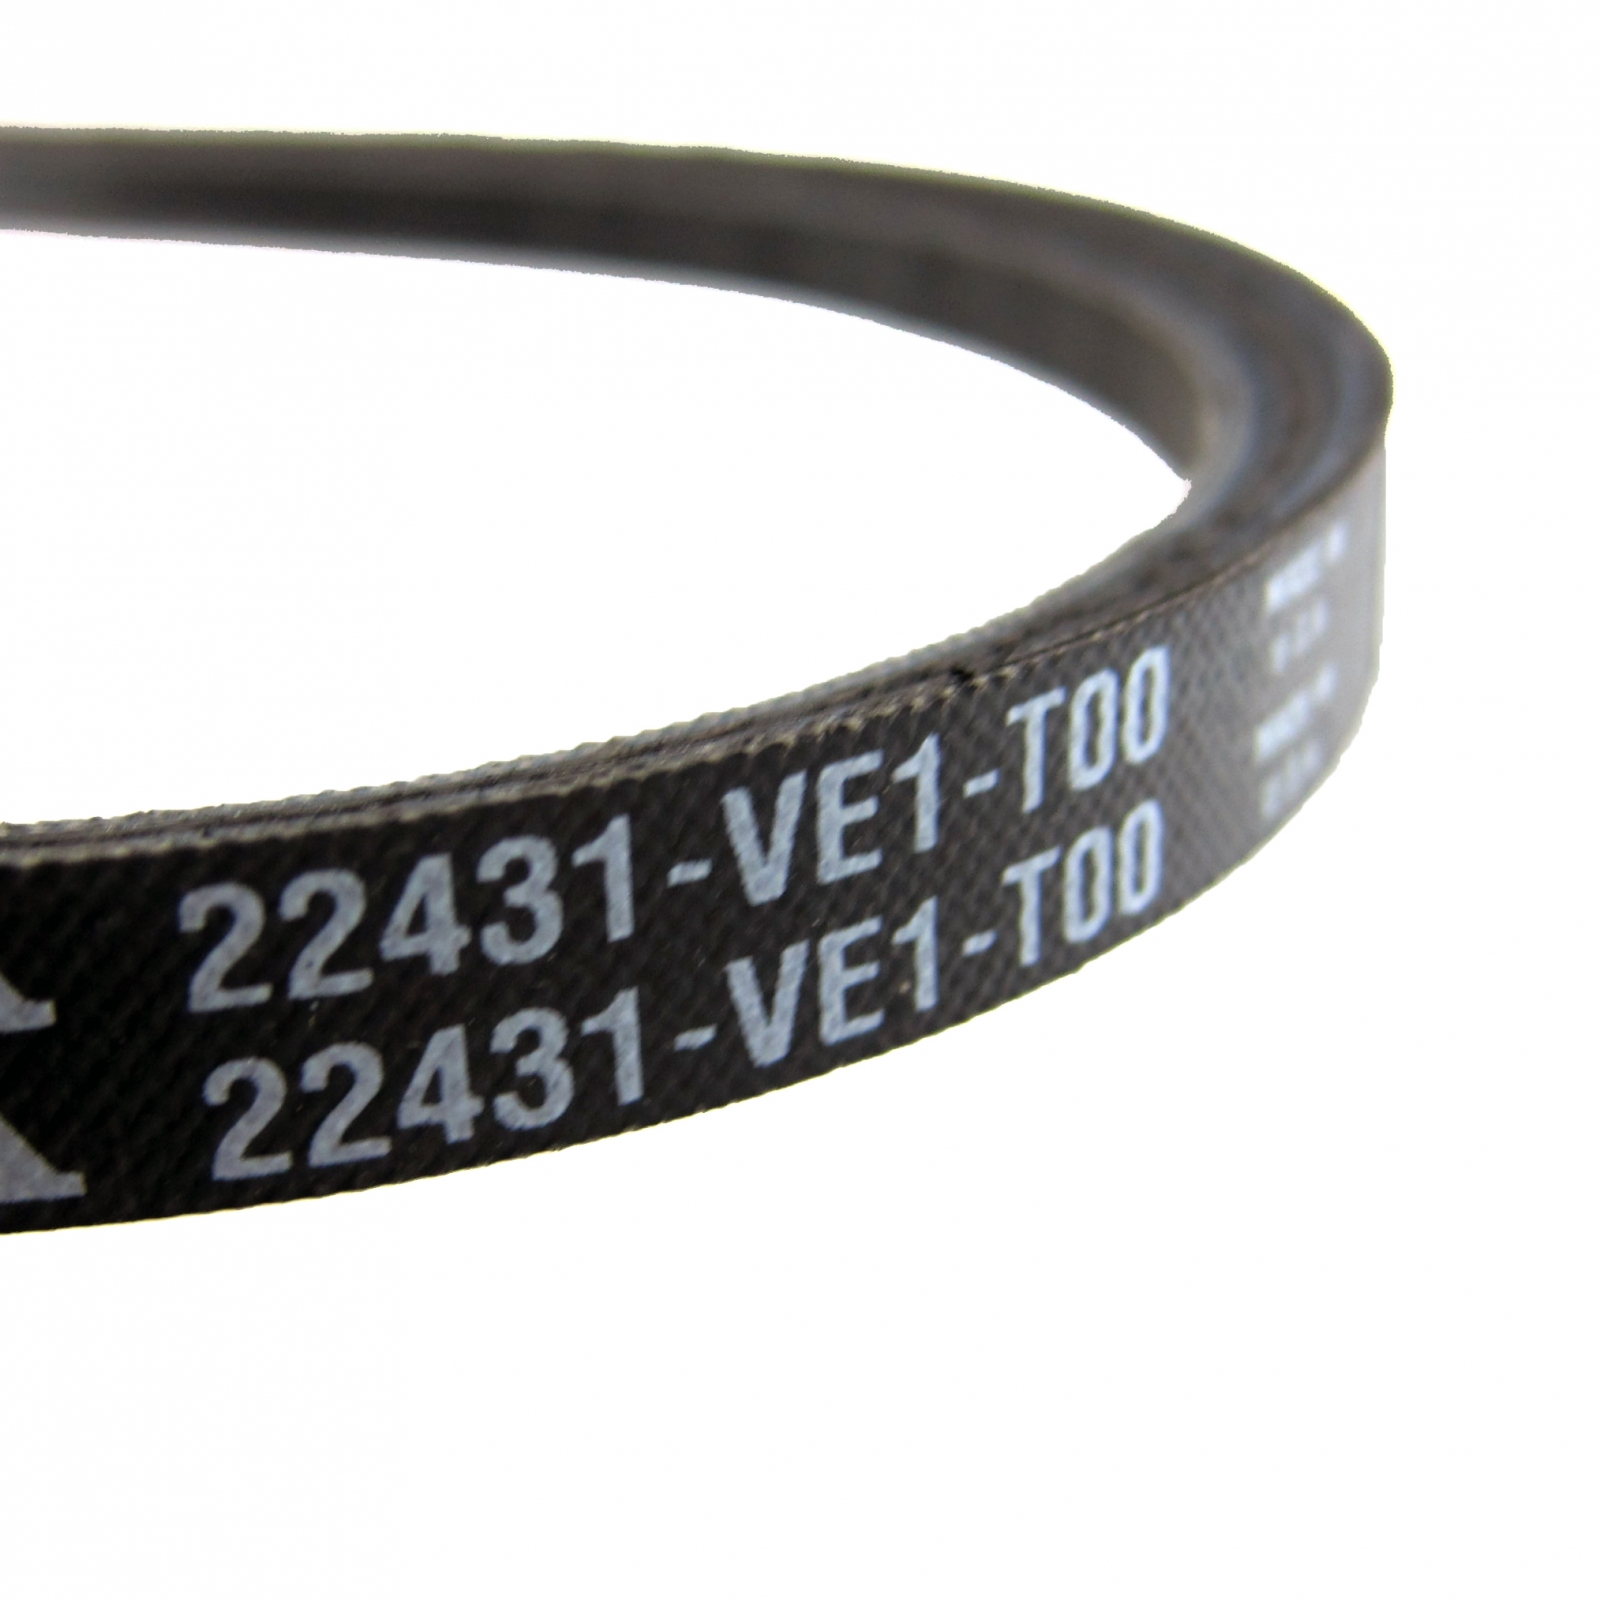 Honda Belt (22431-VE1-T00)